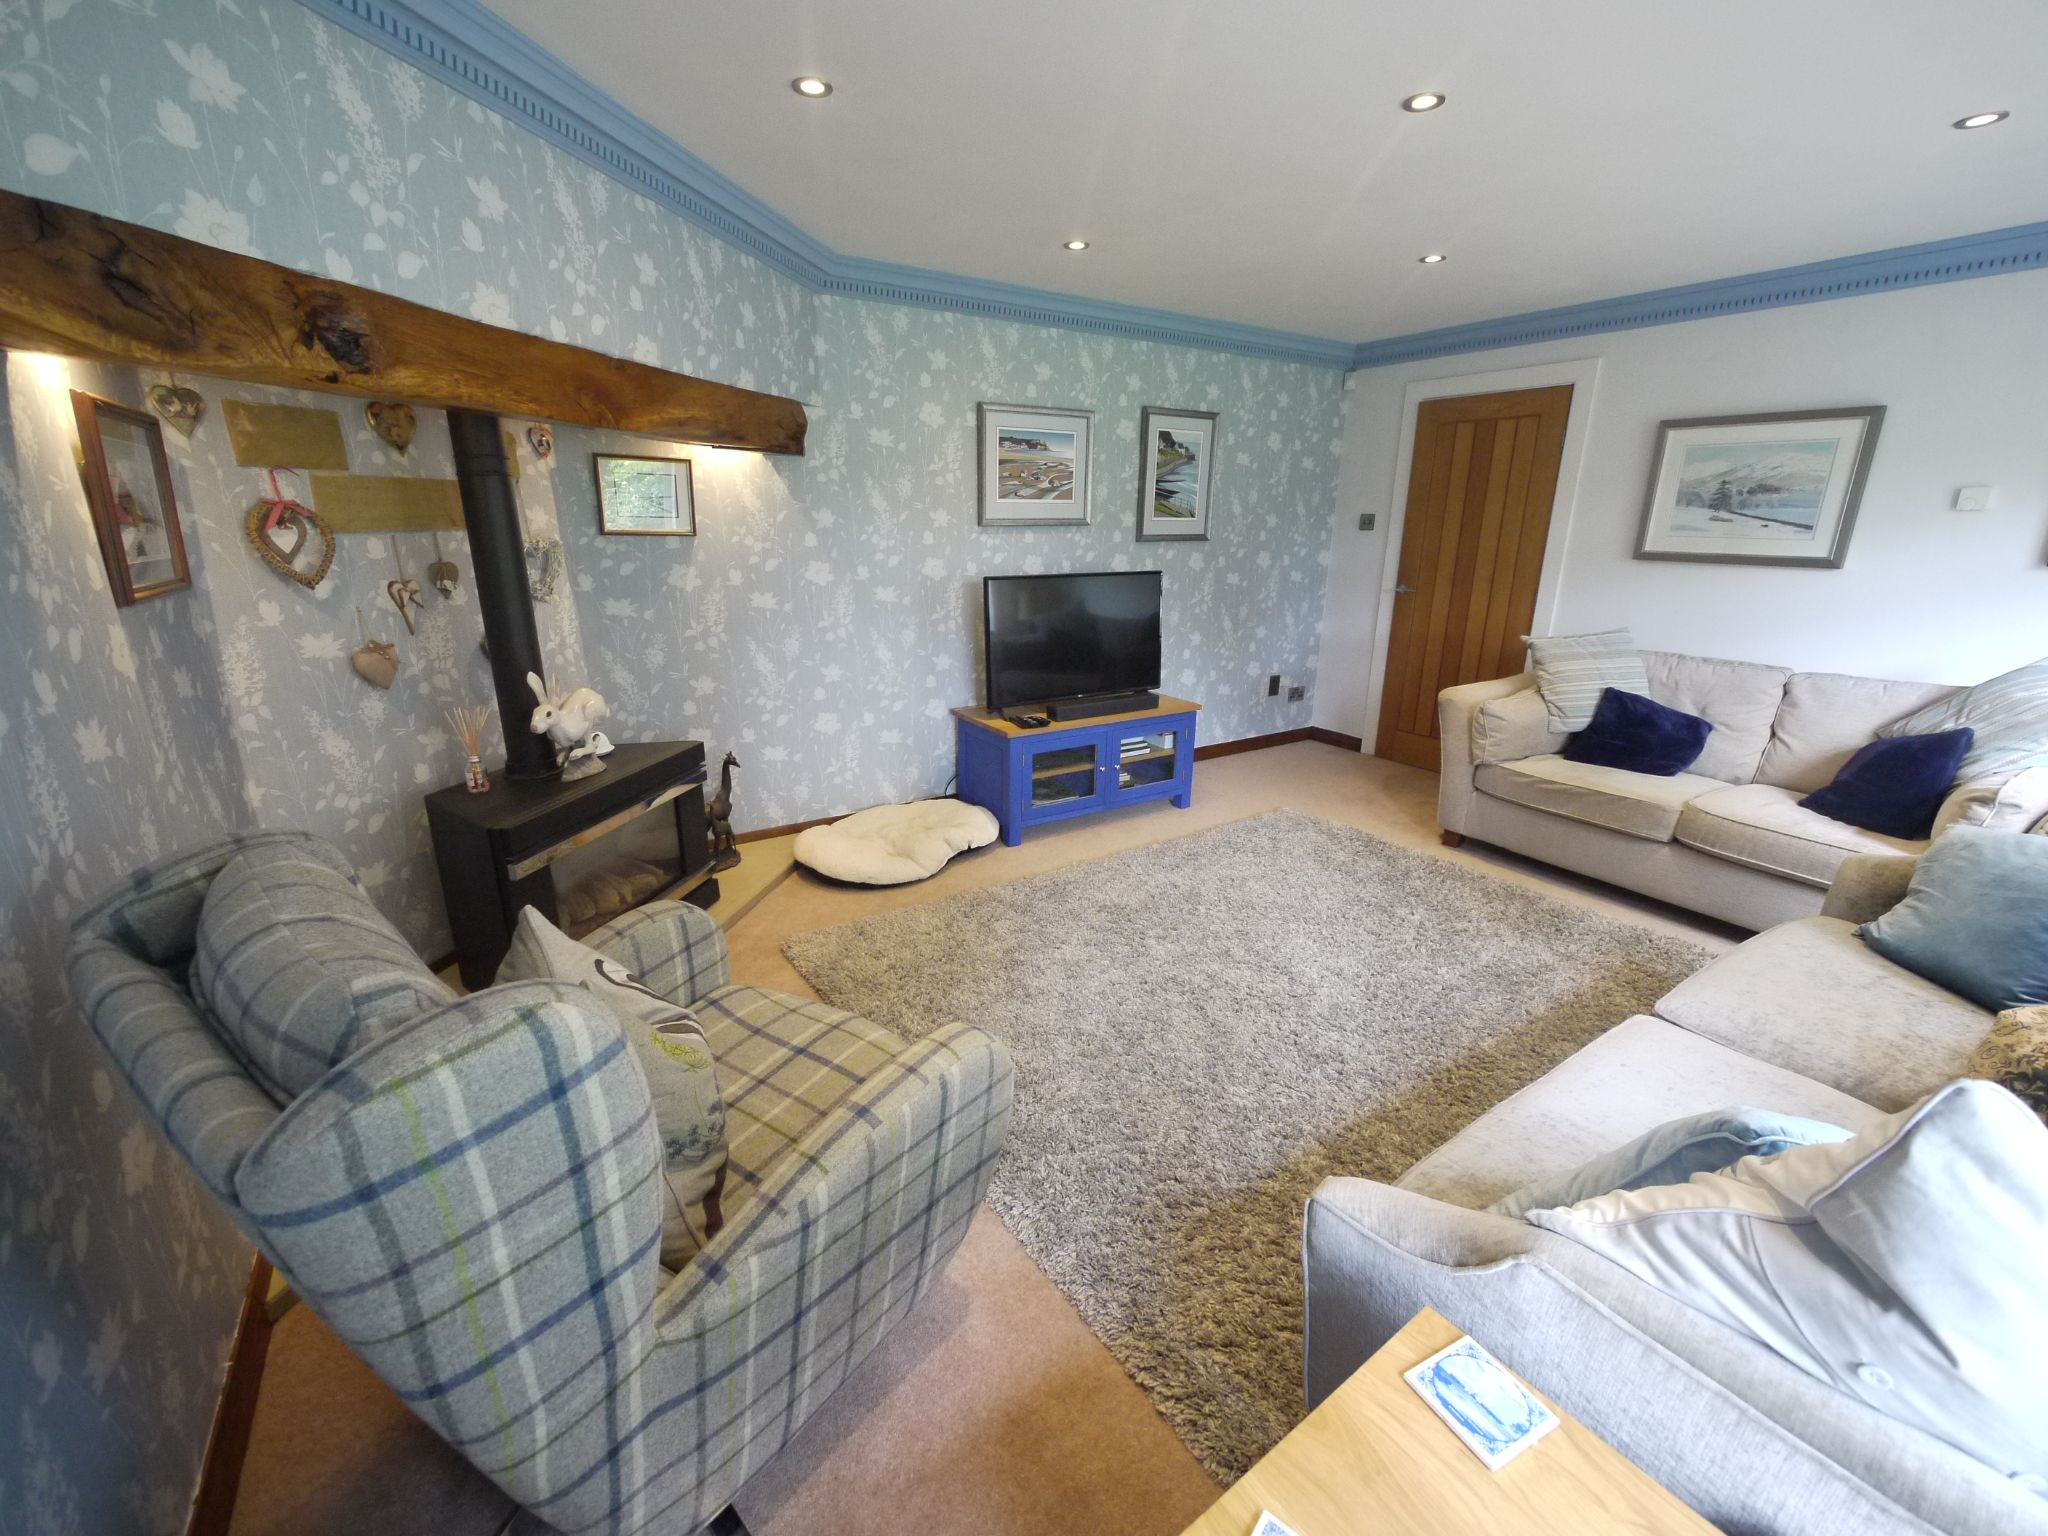 4 bedroom detached house For Sale in Brighouse - Lounge 2.